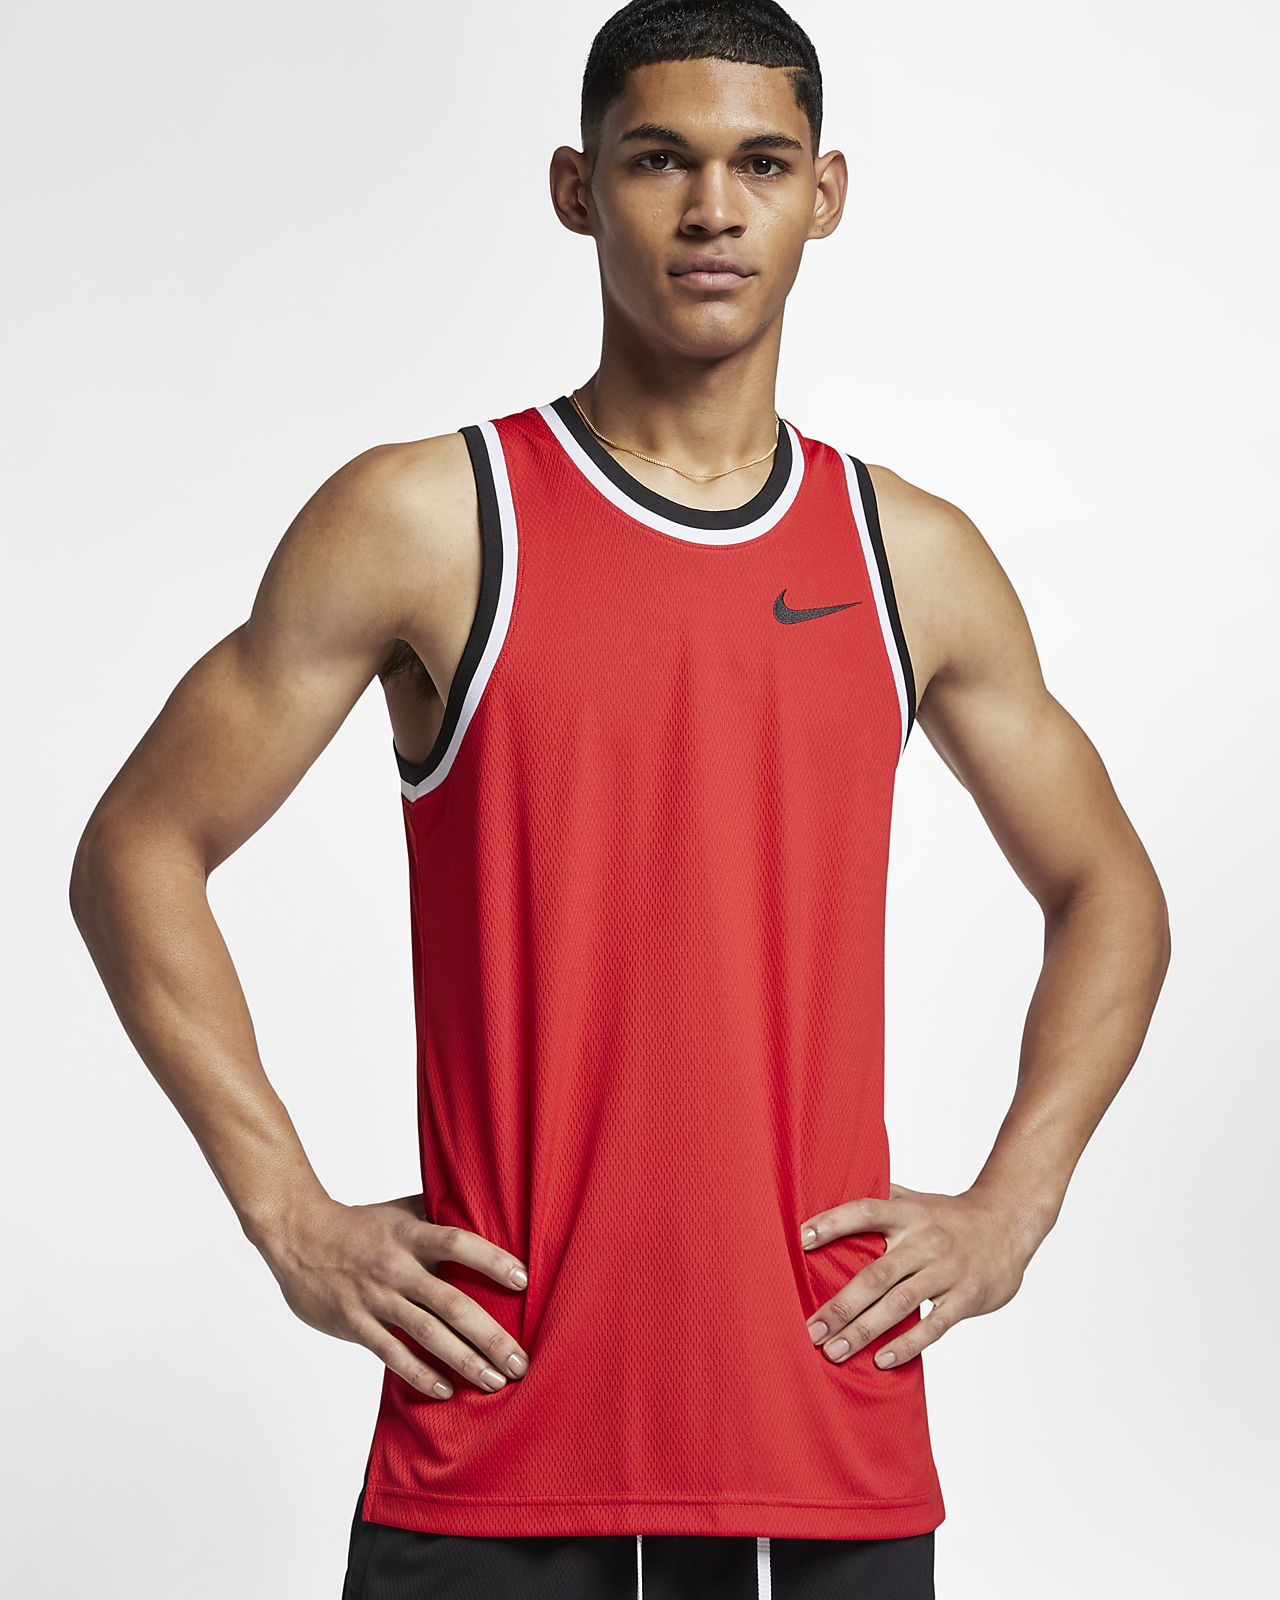 Nike Dri-FIT Classic Men's Basketball